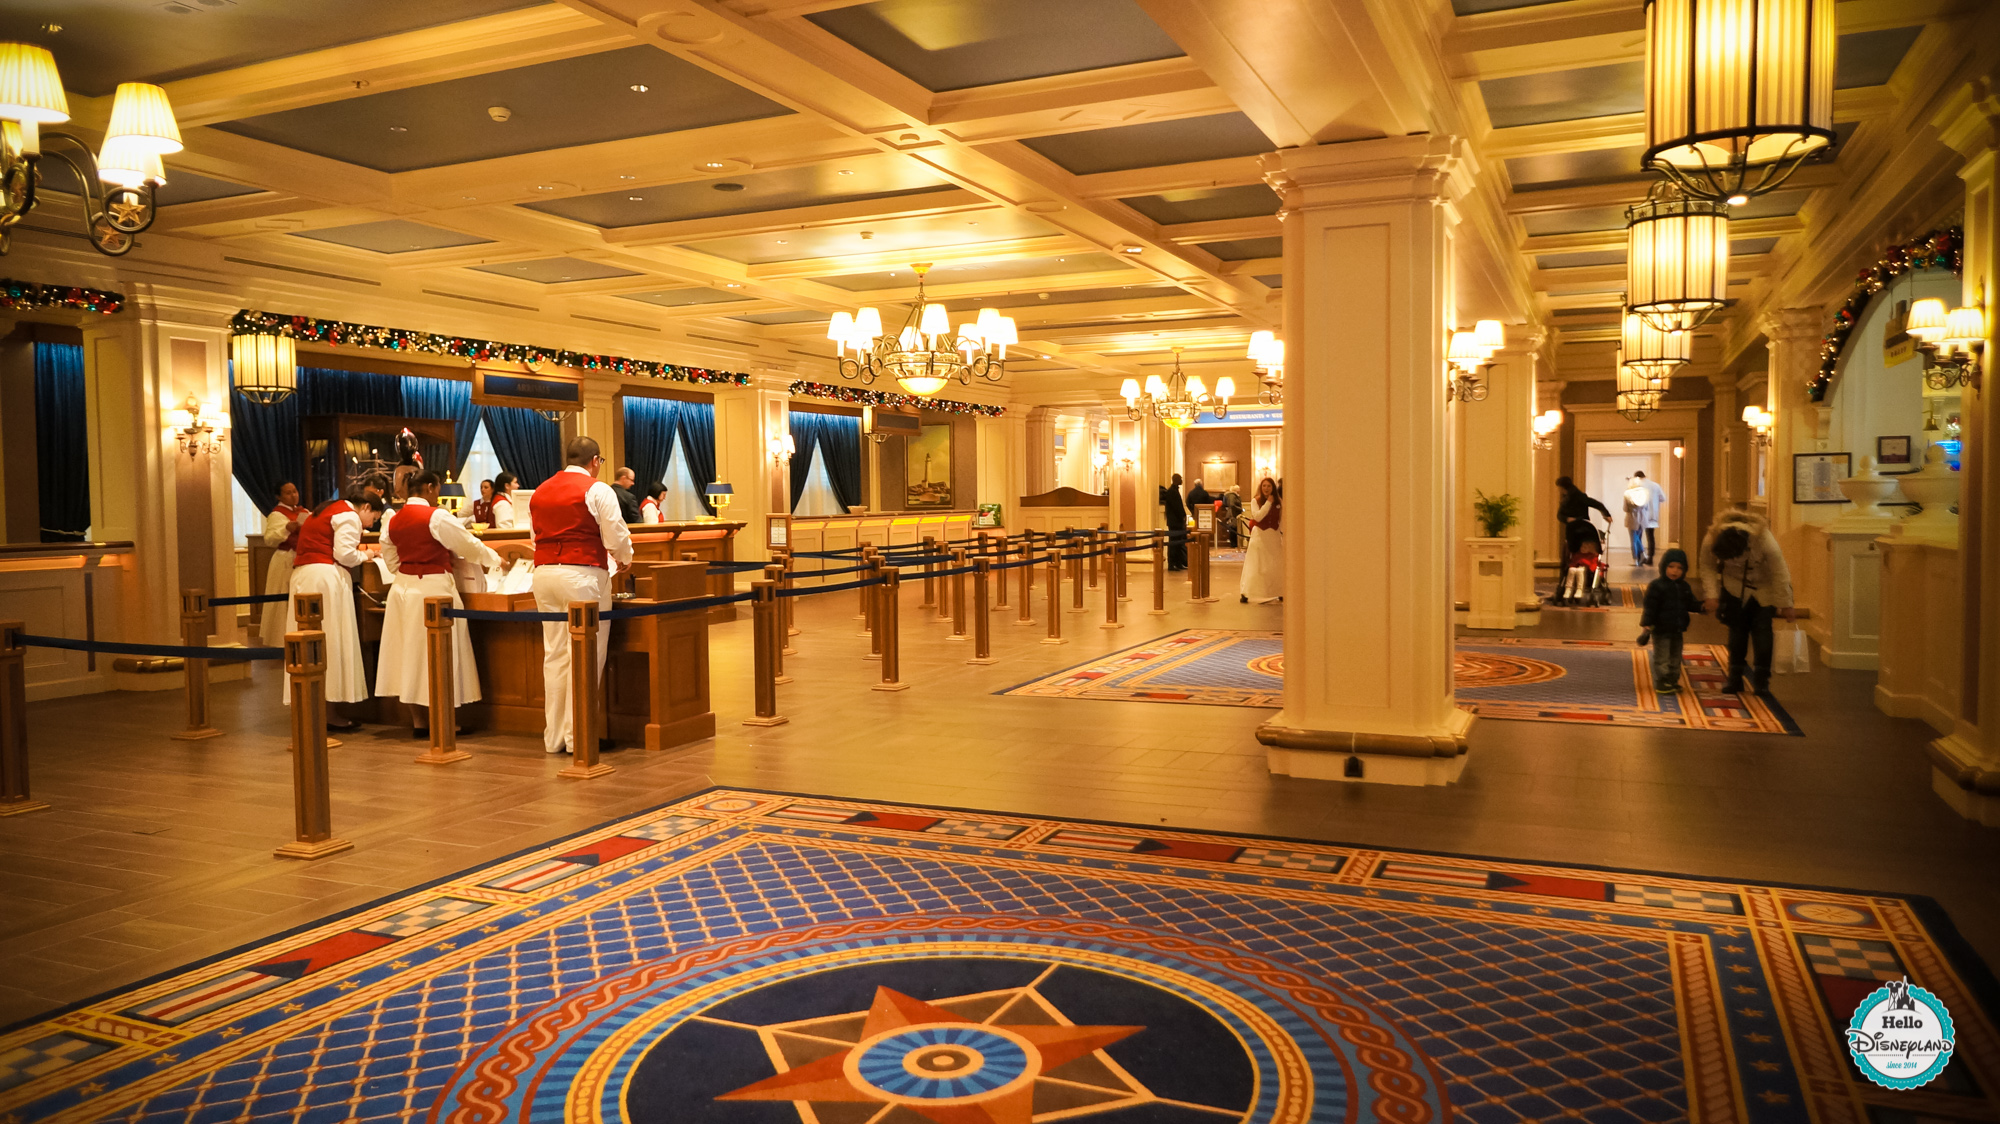 Newport Bay Club 2016 - Disneyland Paris